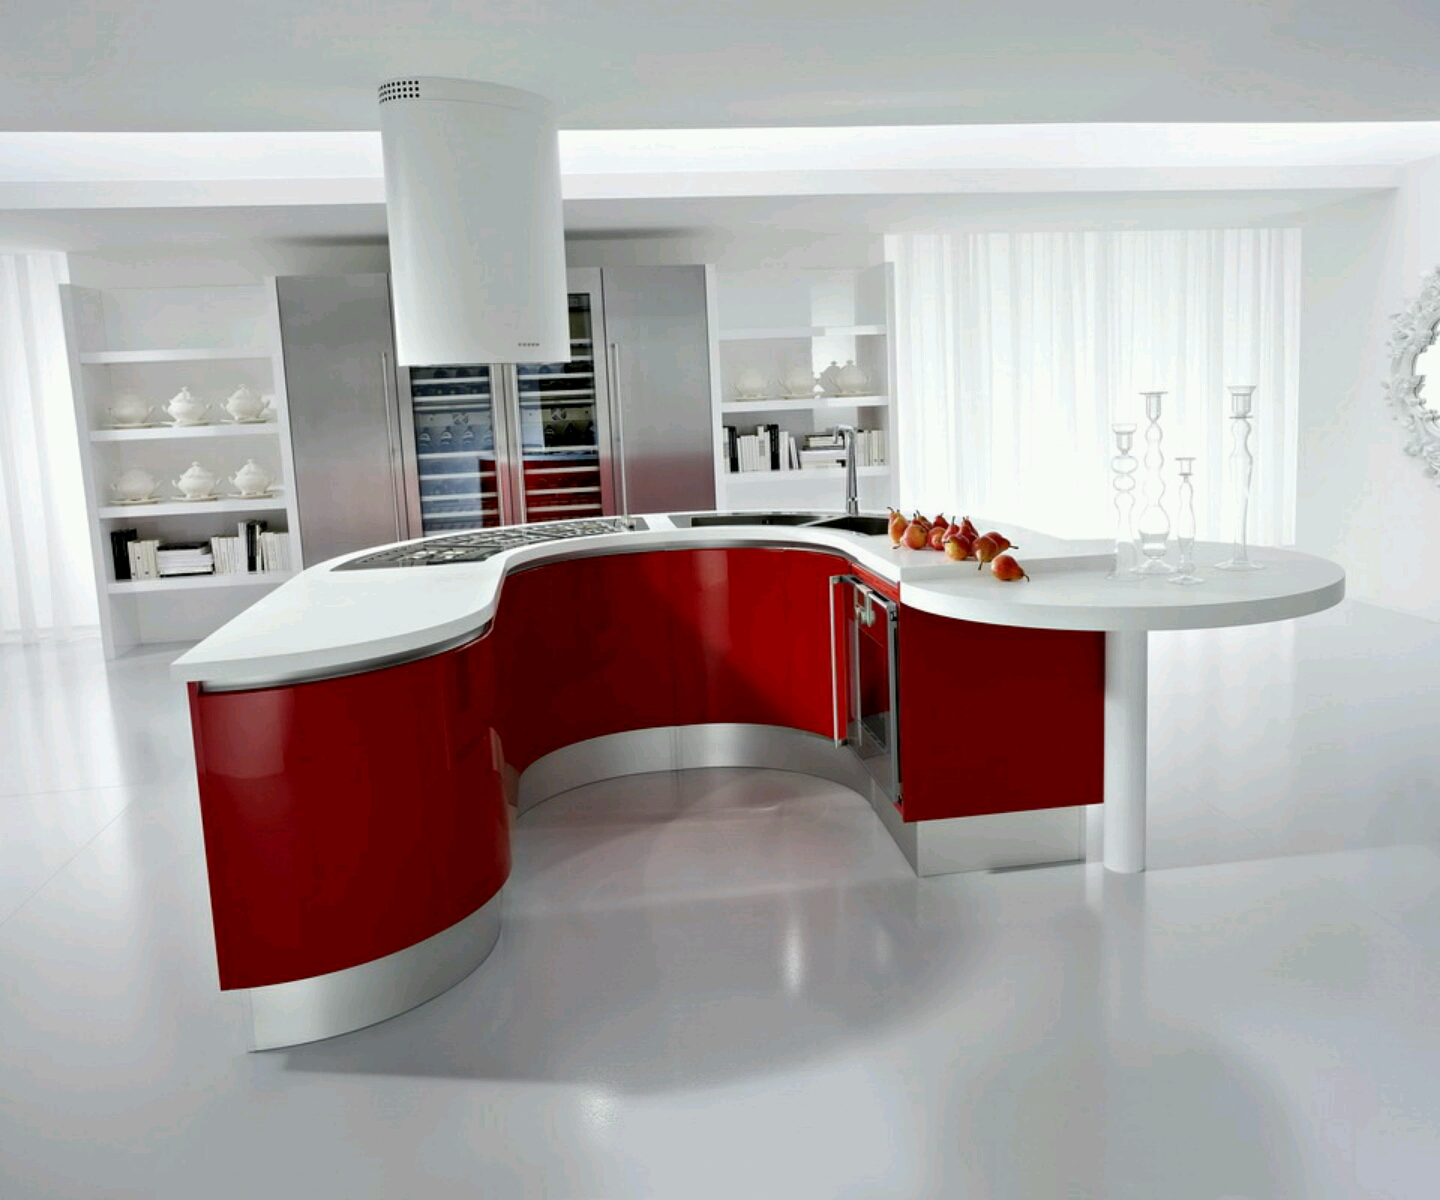 Modern kitchen cabinets designs ideas furniture gallery Modern design kitchen designs